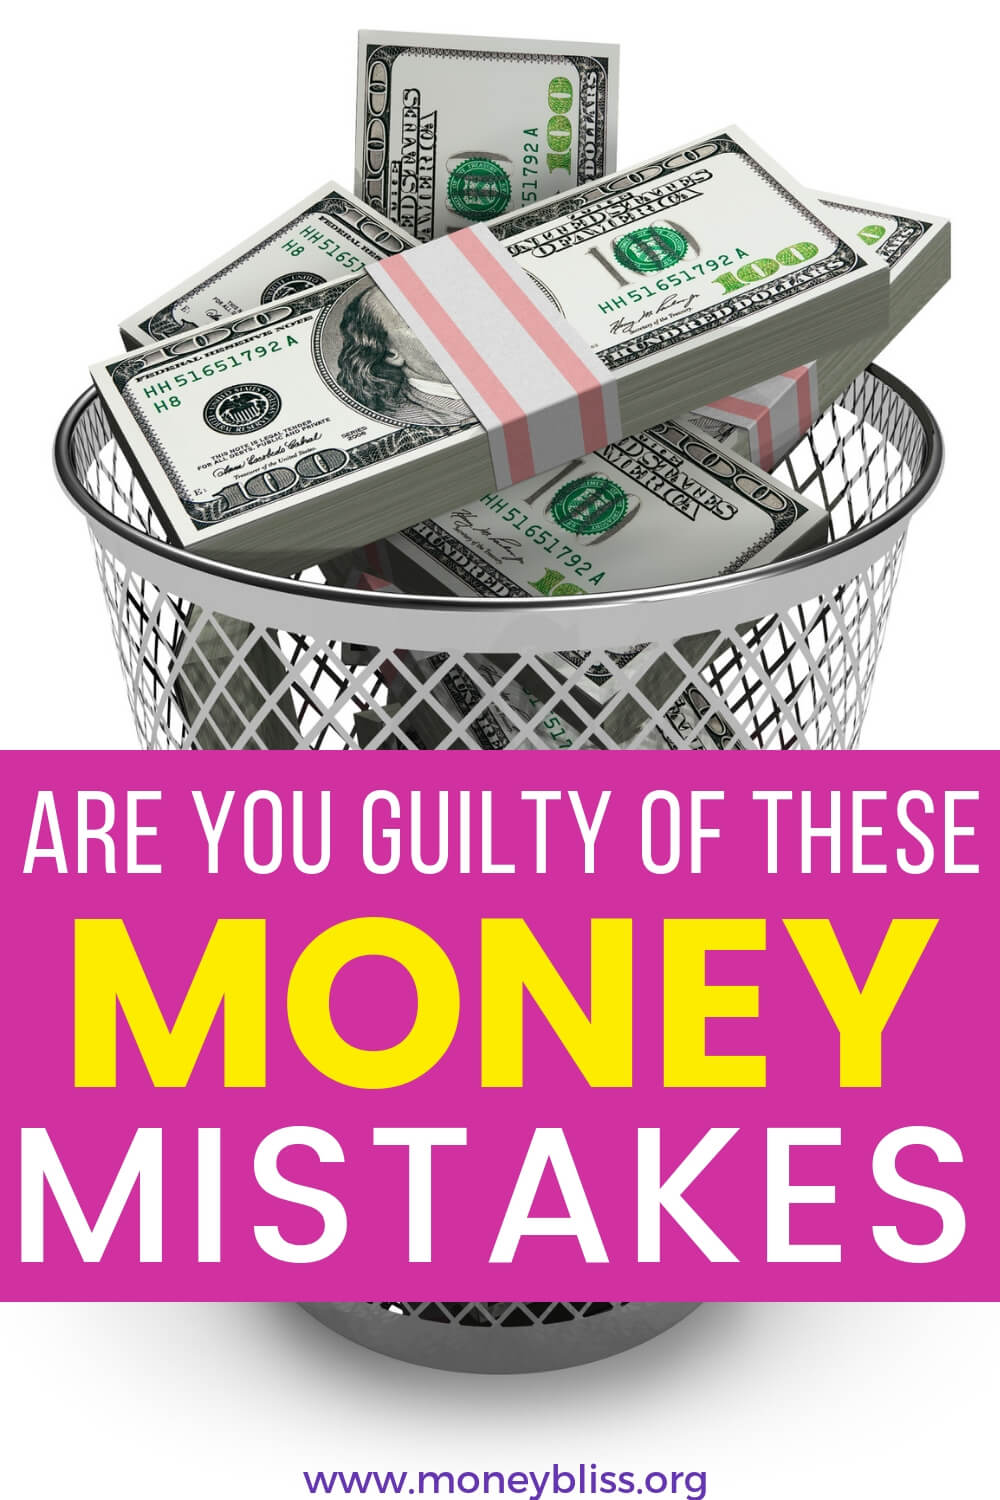 Are you guilty of these money mistakes? Any of them can destroy your personal finance situation. Learn how to avoid the money mistakes and greatly improve how you handle money with affirmations.